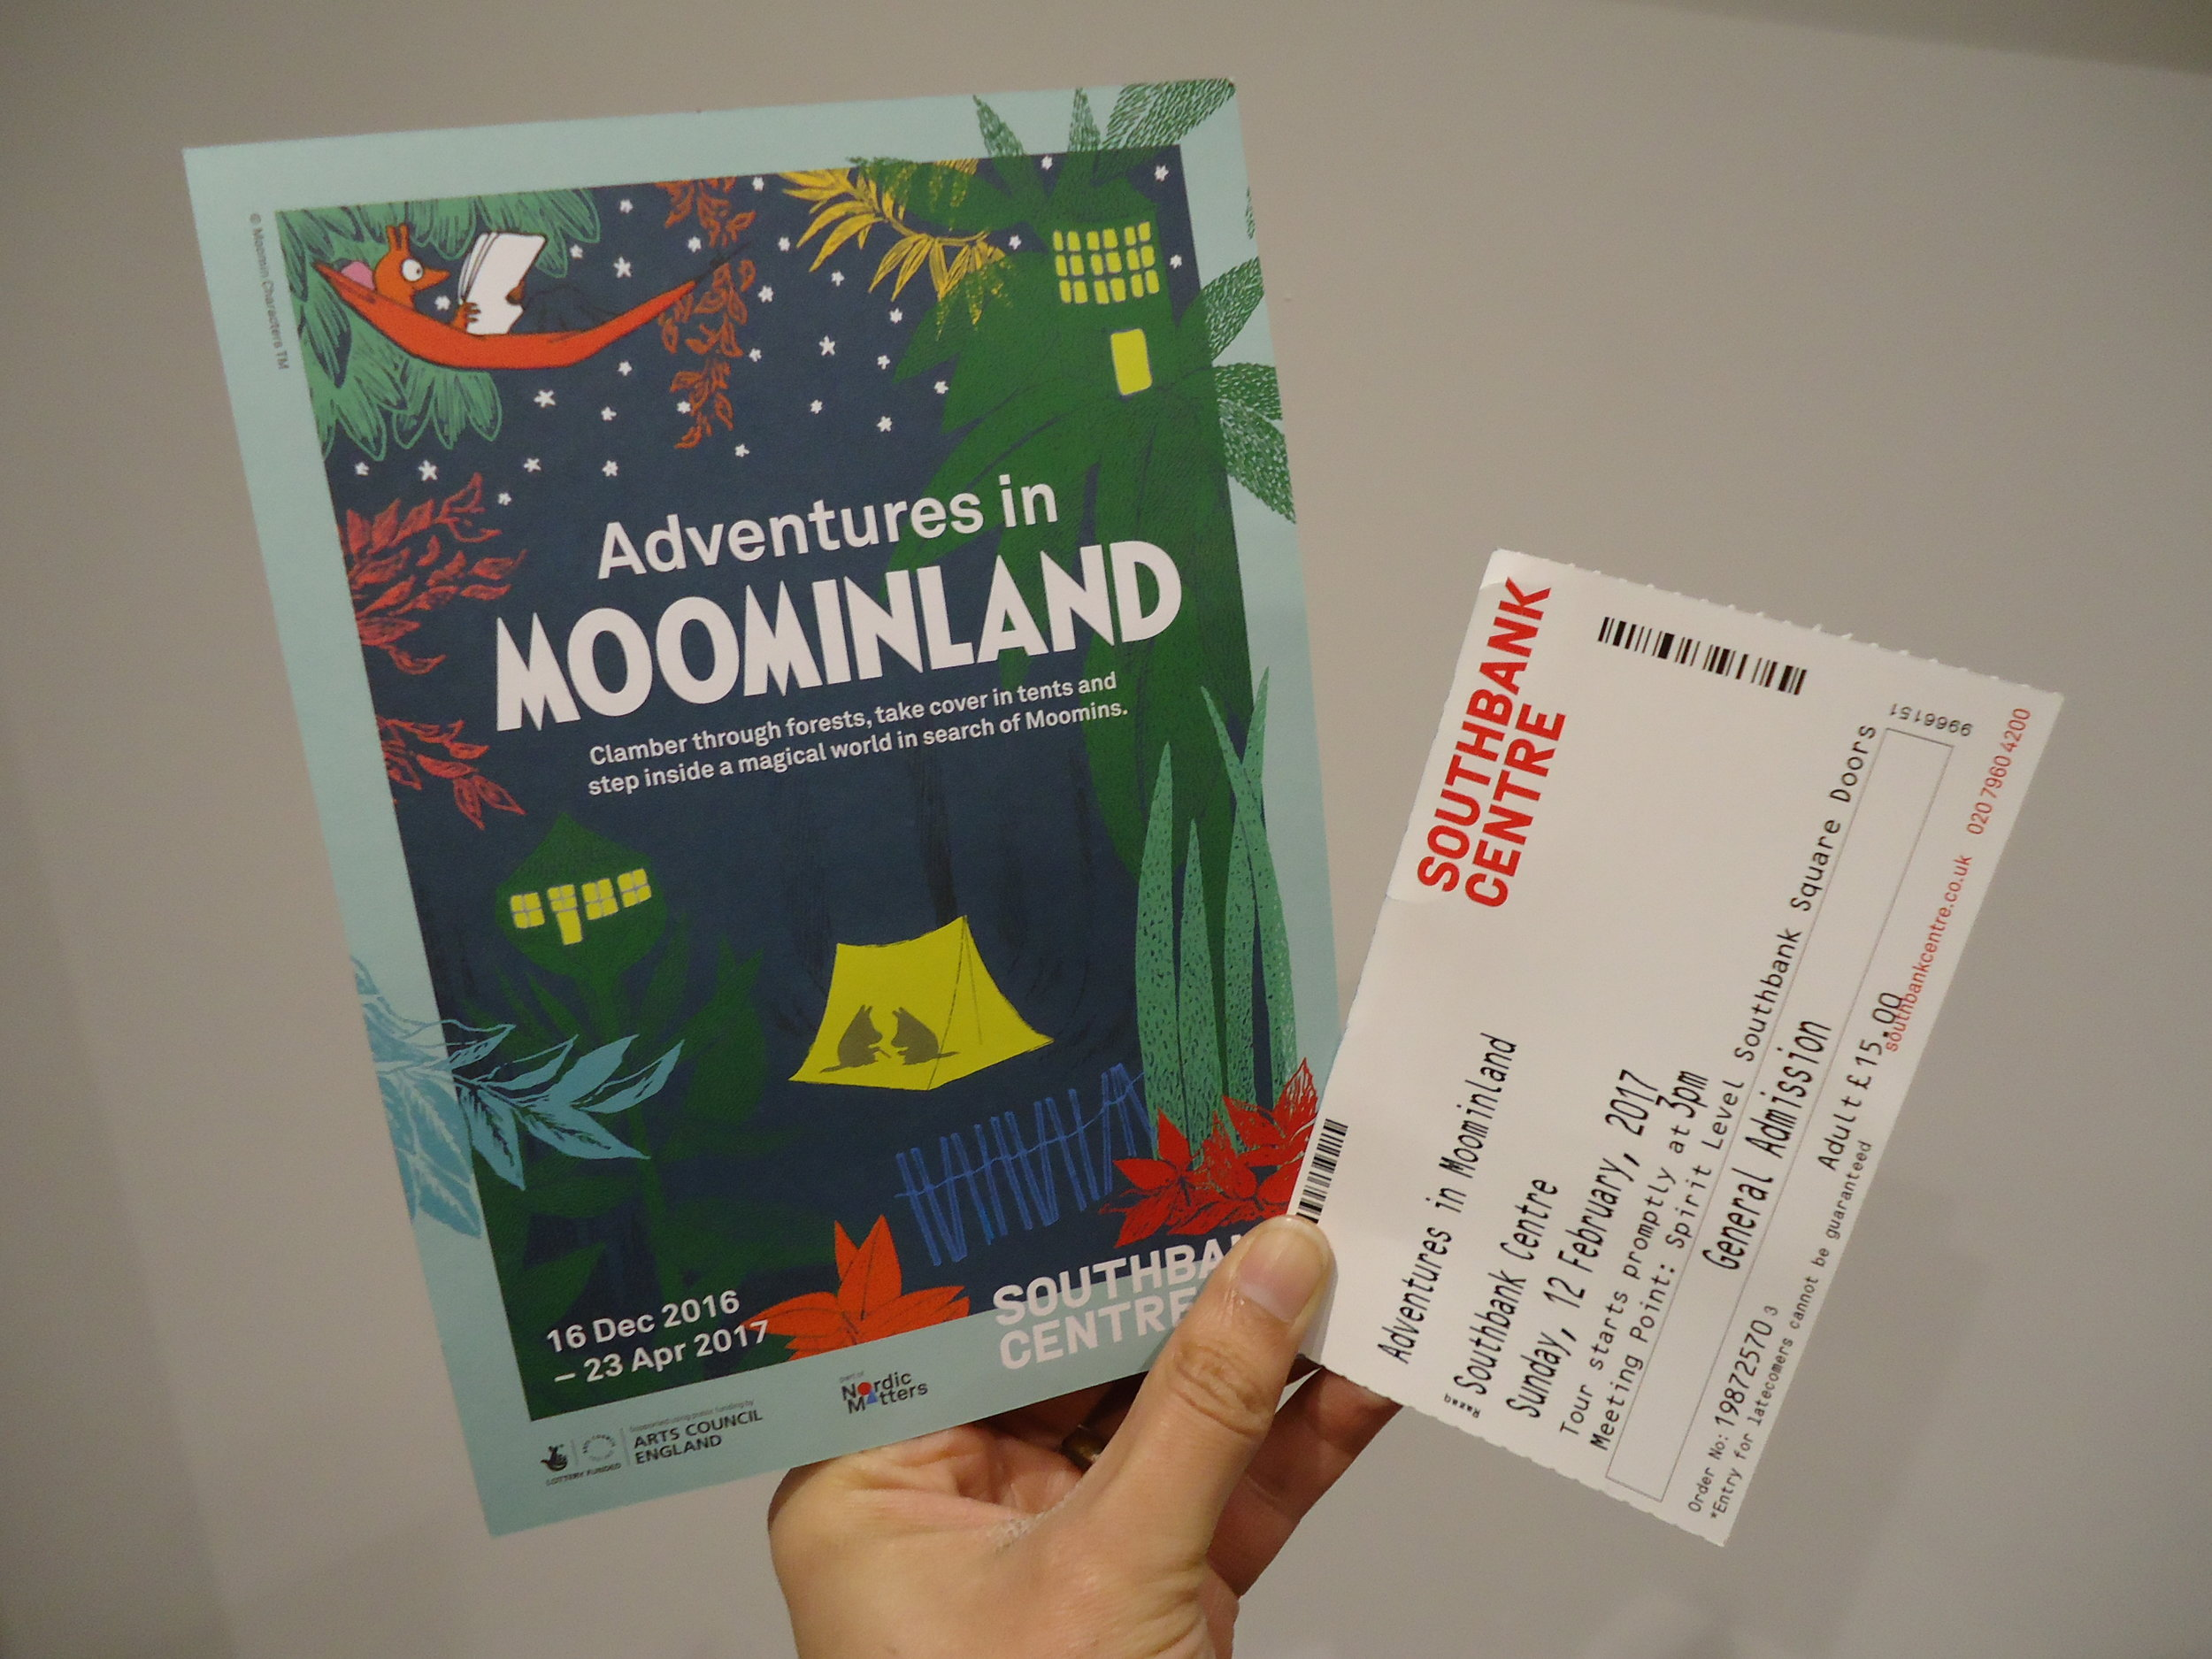 Moomin Exhibition @SouthbankCentre